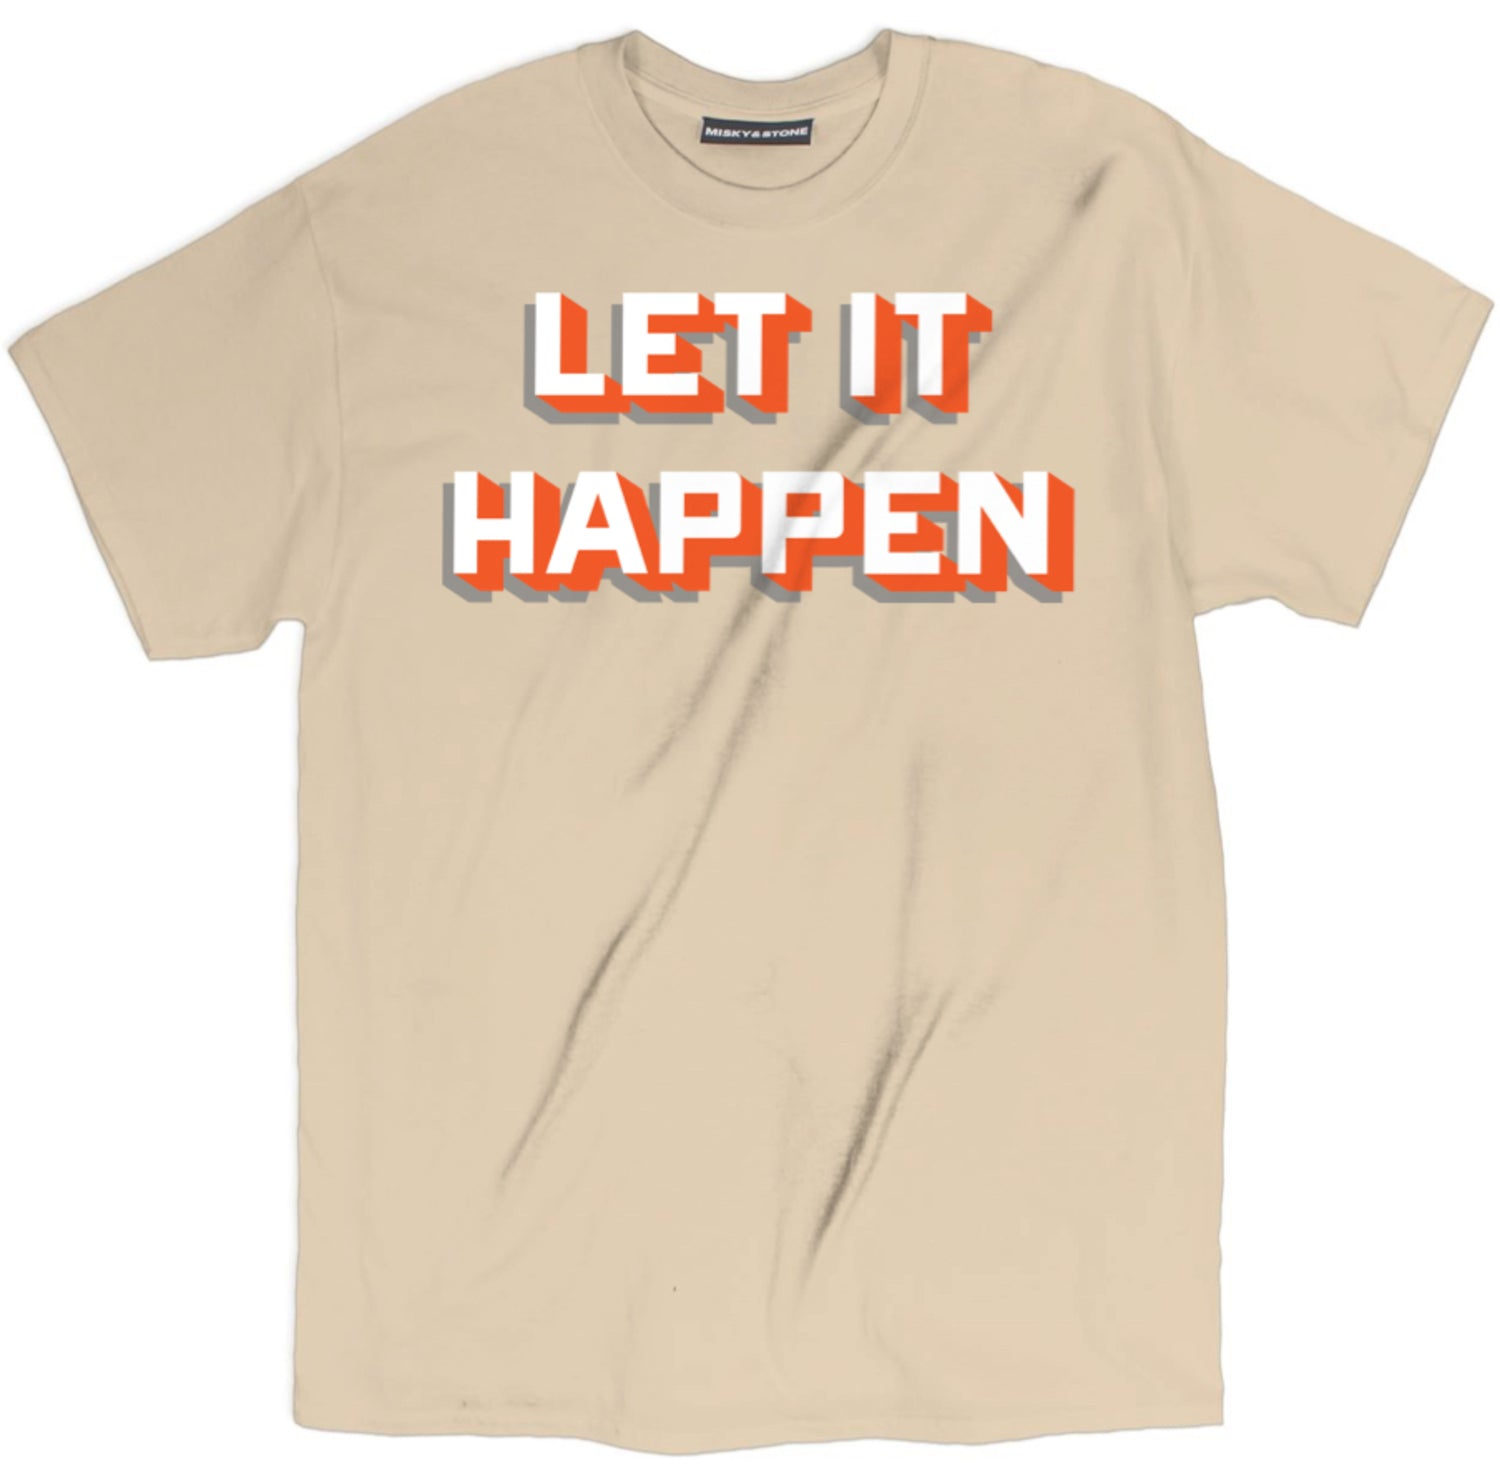 Let It Happen Tame Impala T Shirt